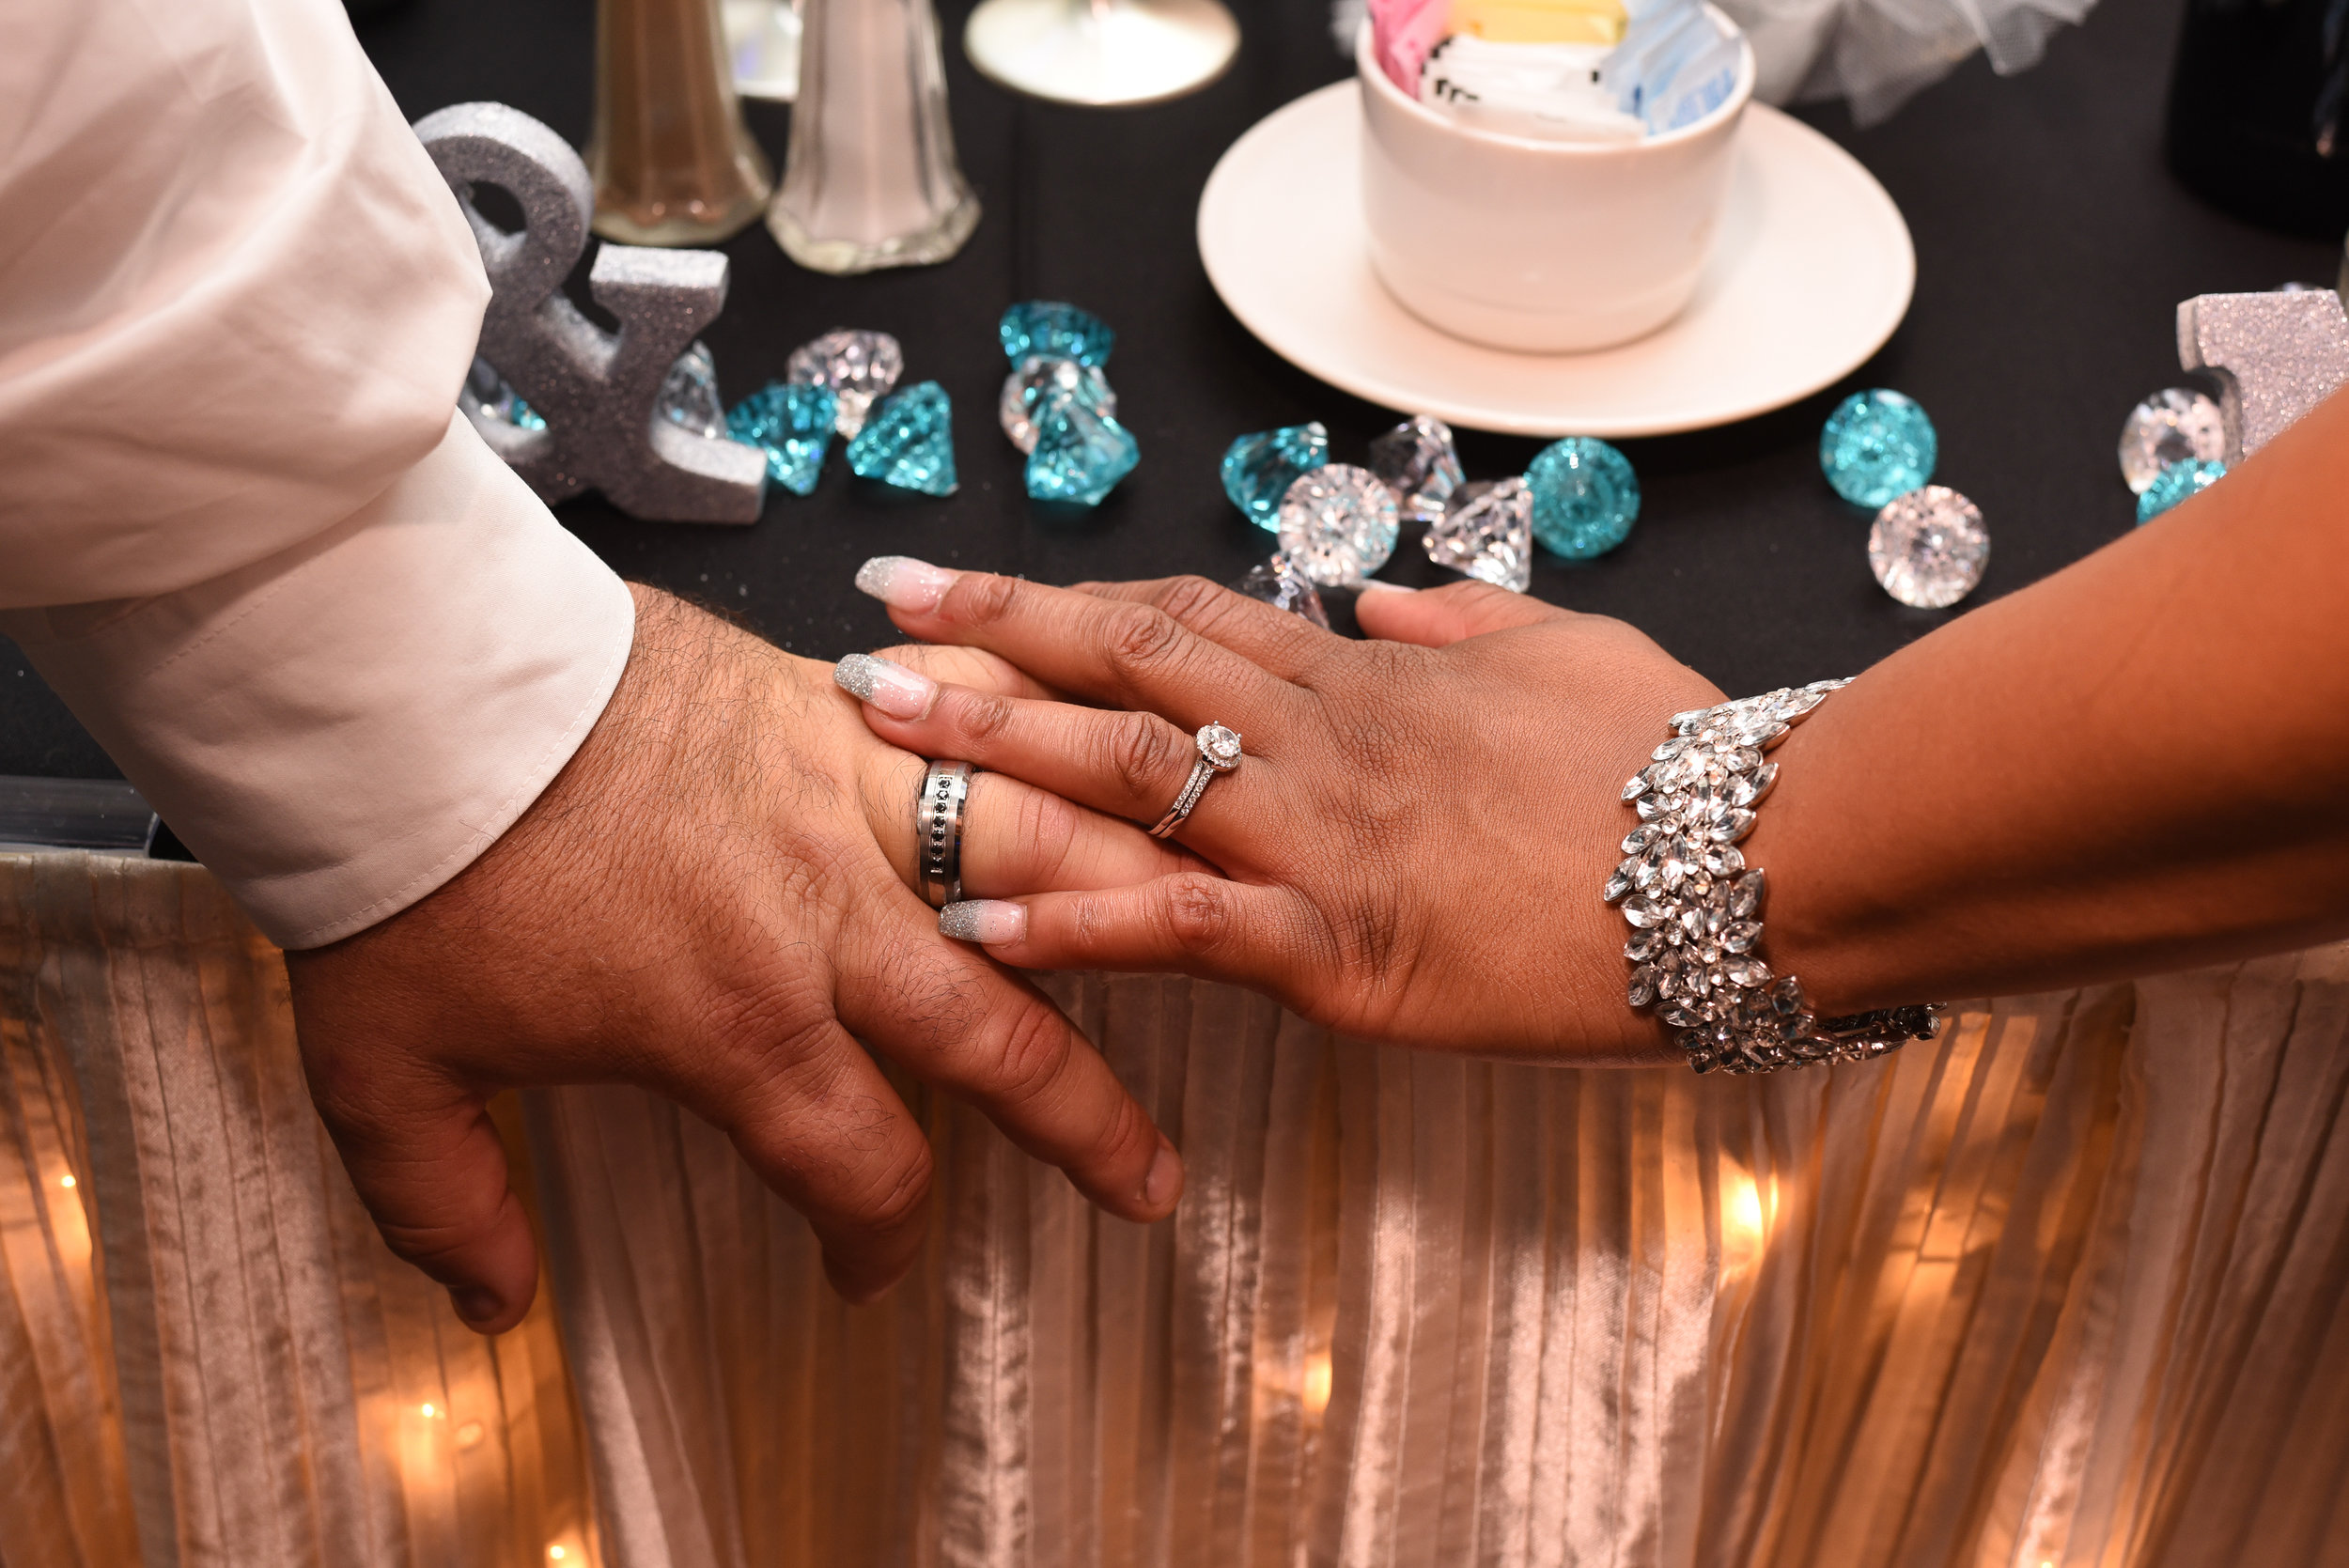 Eugene & Quintavia's wedding rings.